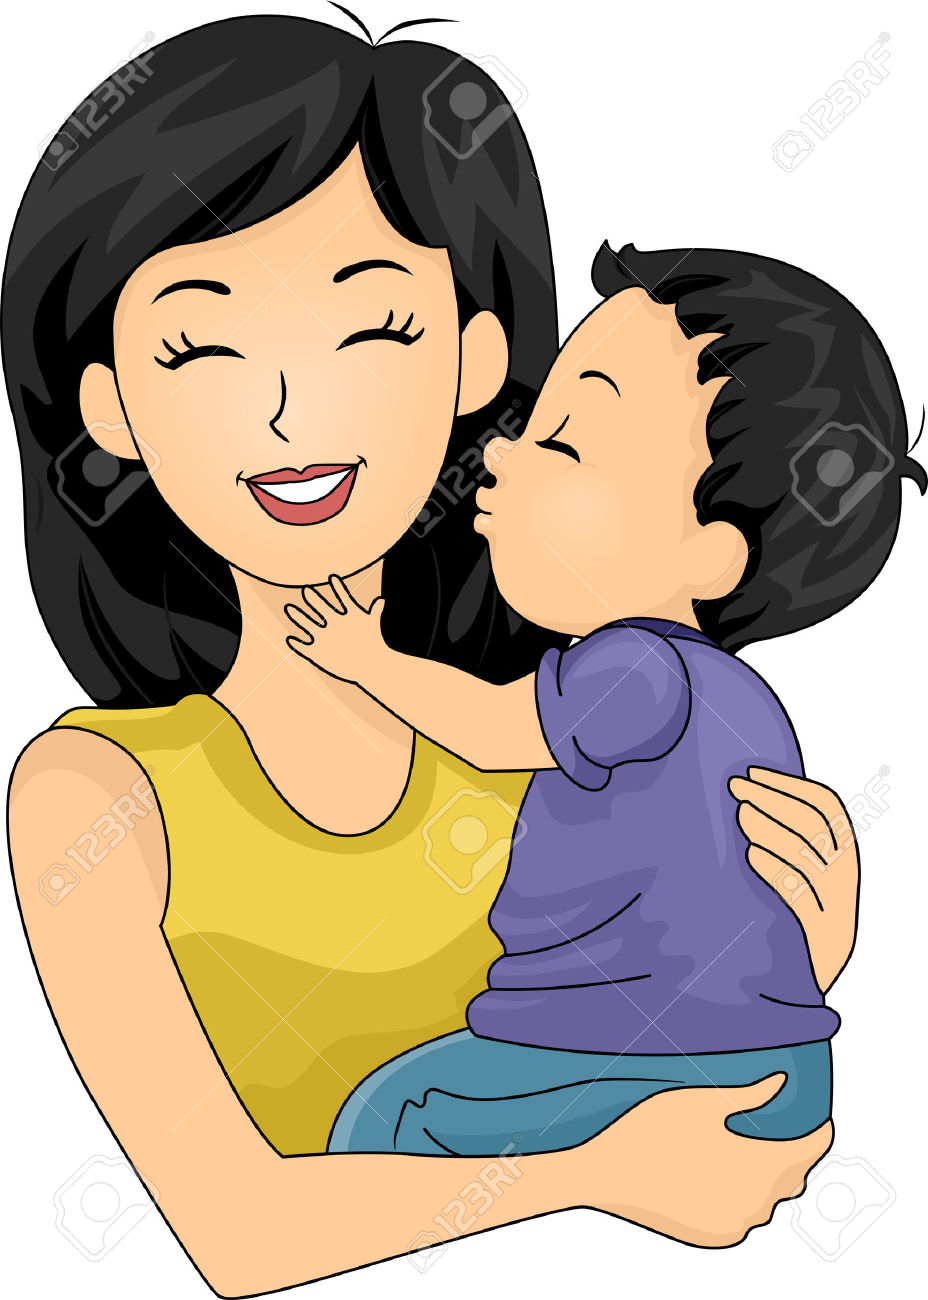 Mommy clipart Mommy Clipart Mommy Kisses Download